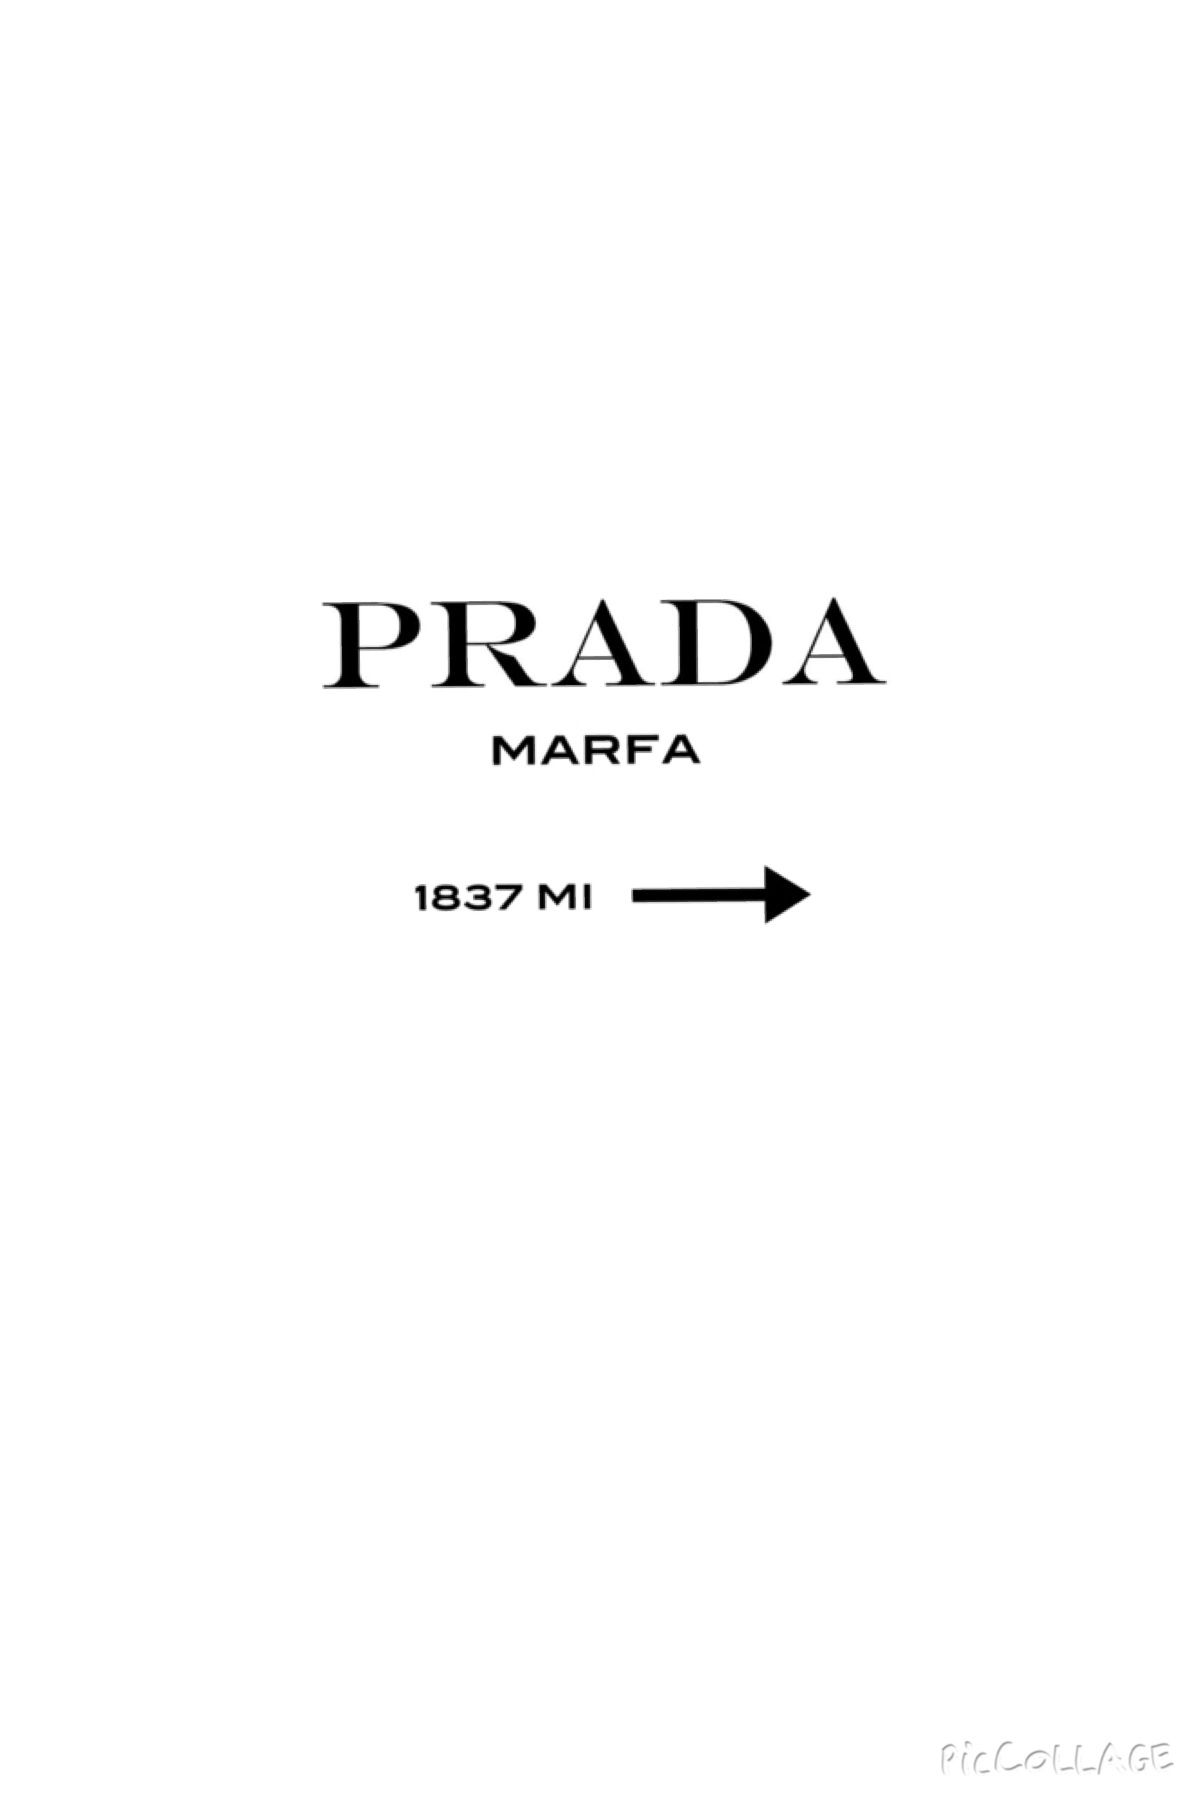 df79a92201568 Prada Marfa Milano iphone wallpaper | ideas | Hintergrundbilder ...